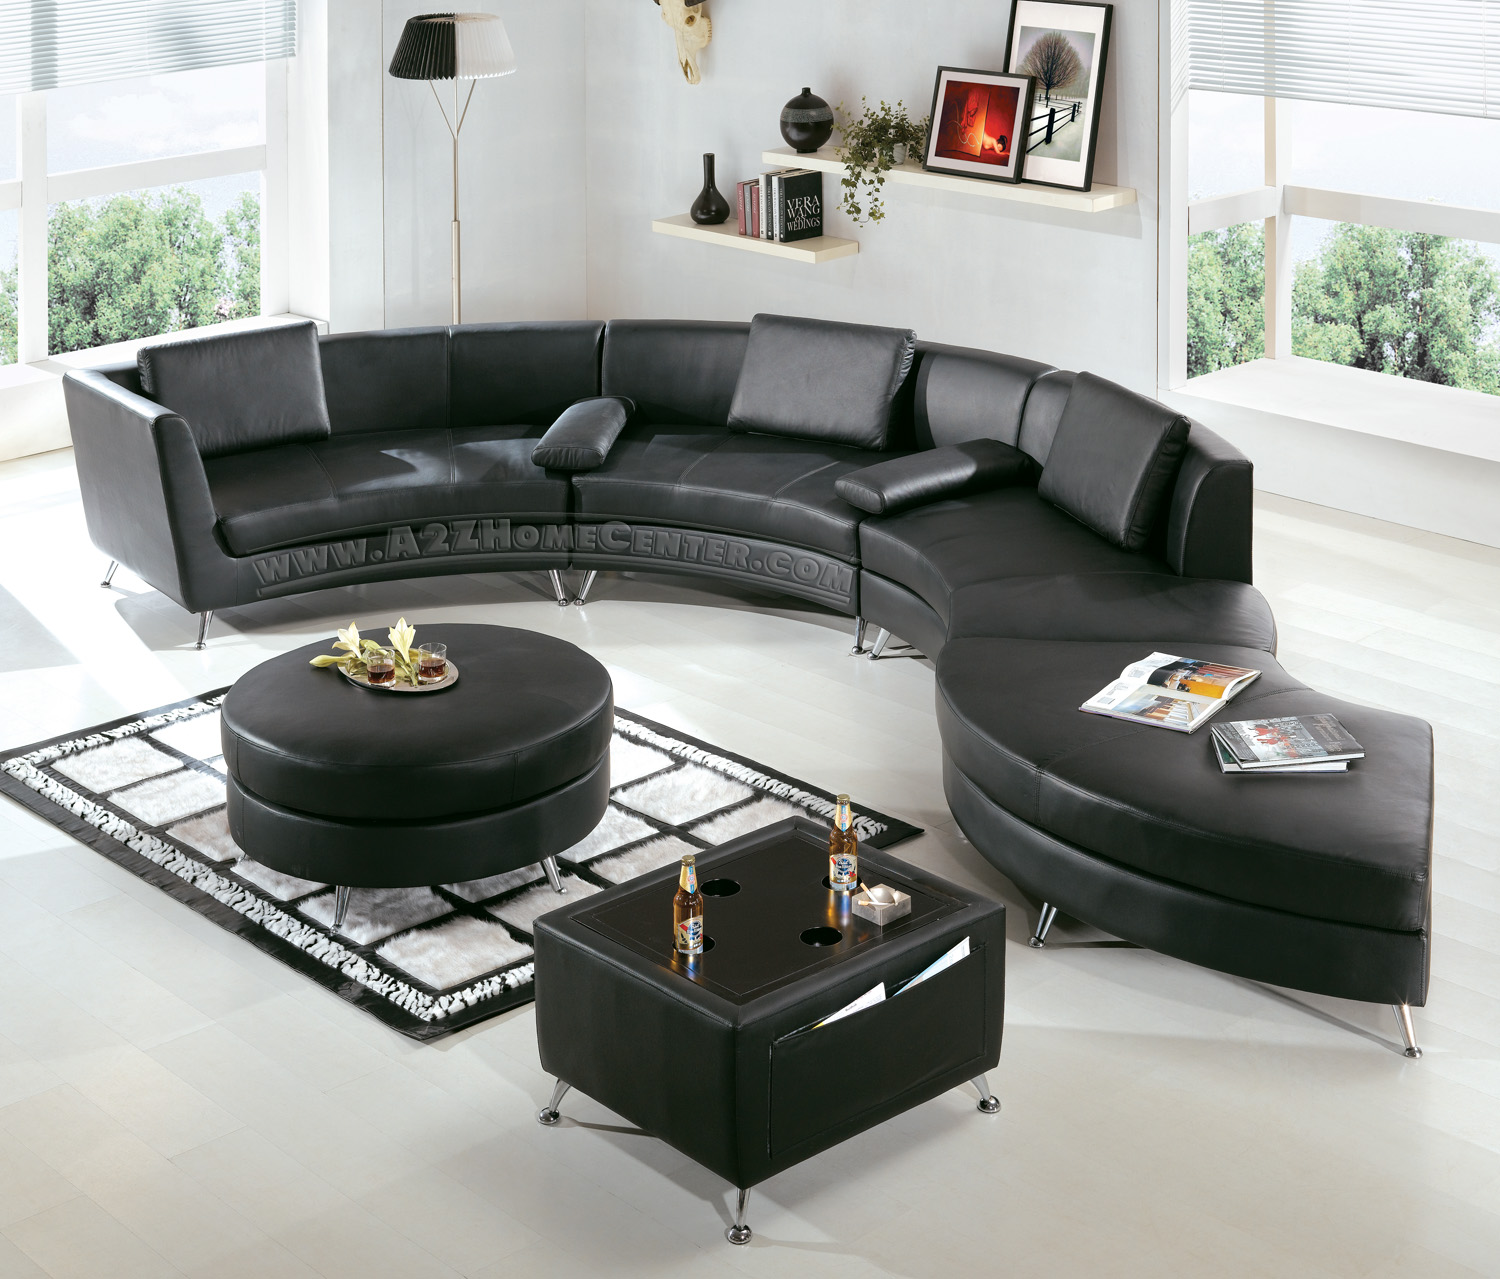 Trend home interior design 2011 modern furniture sofa for Contemporary furniture design